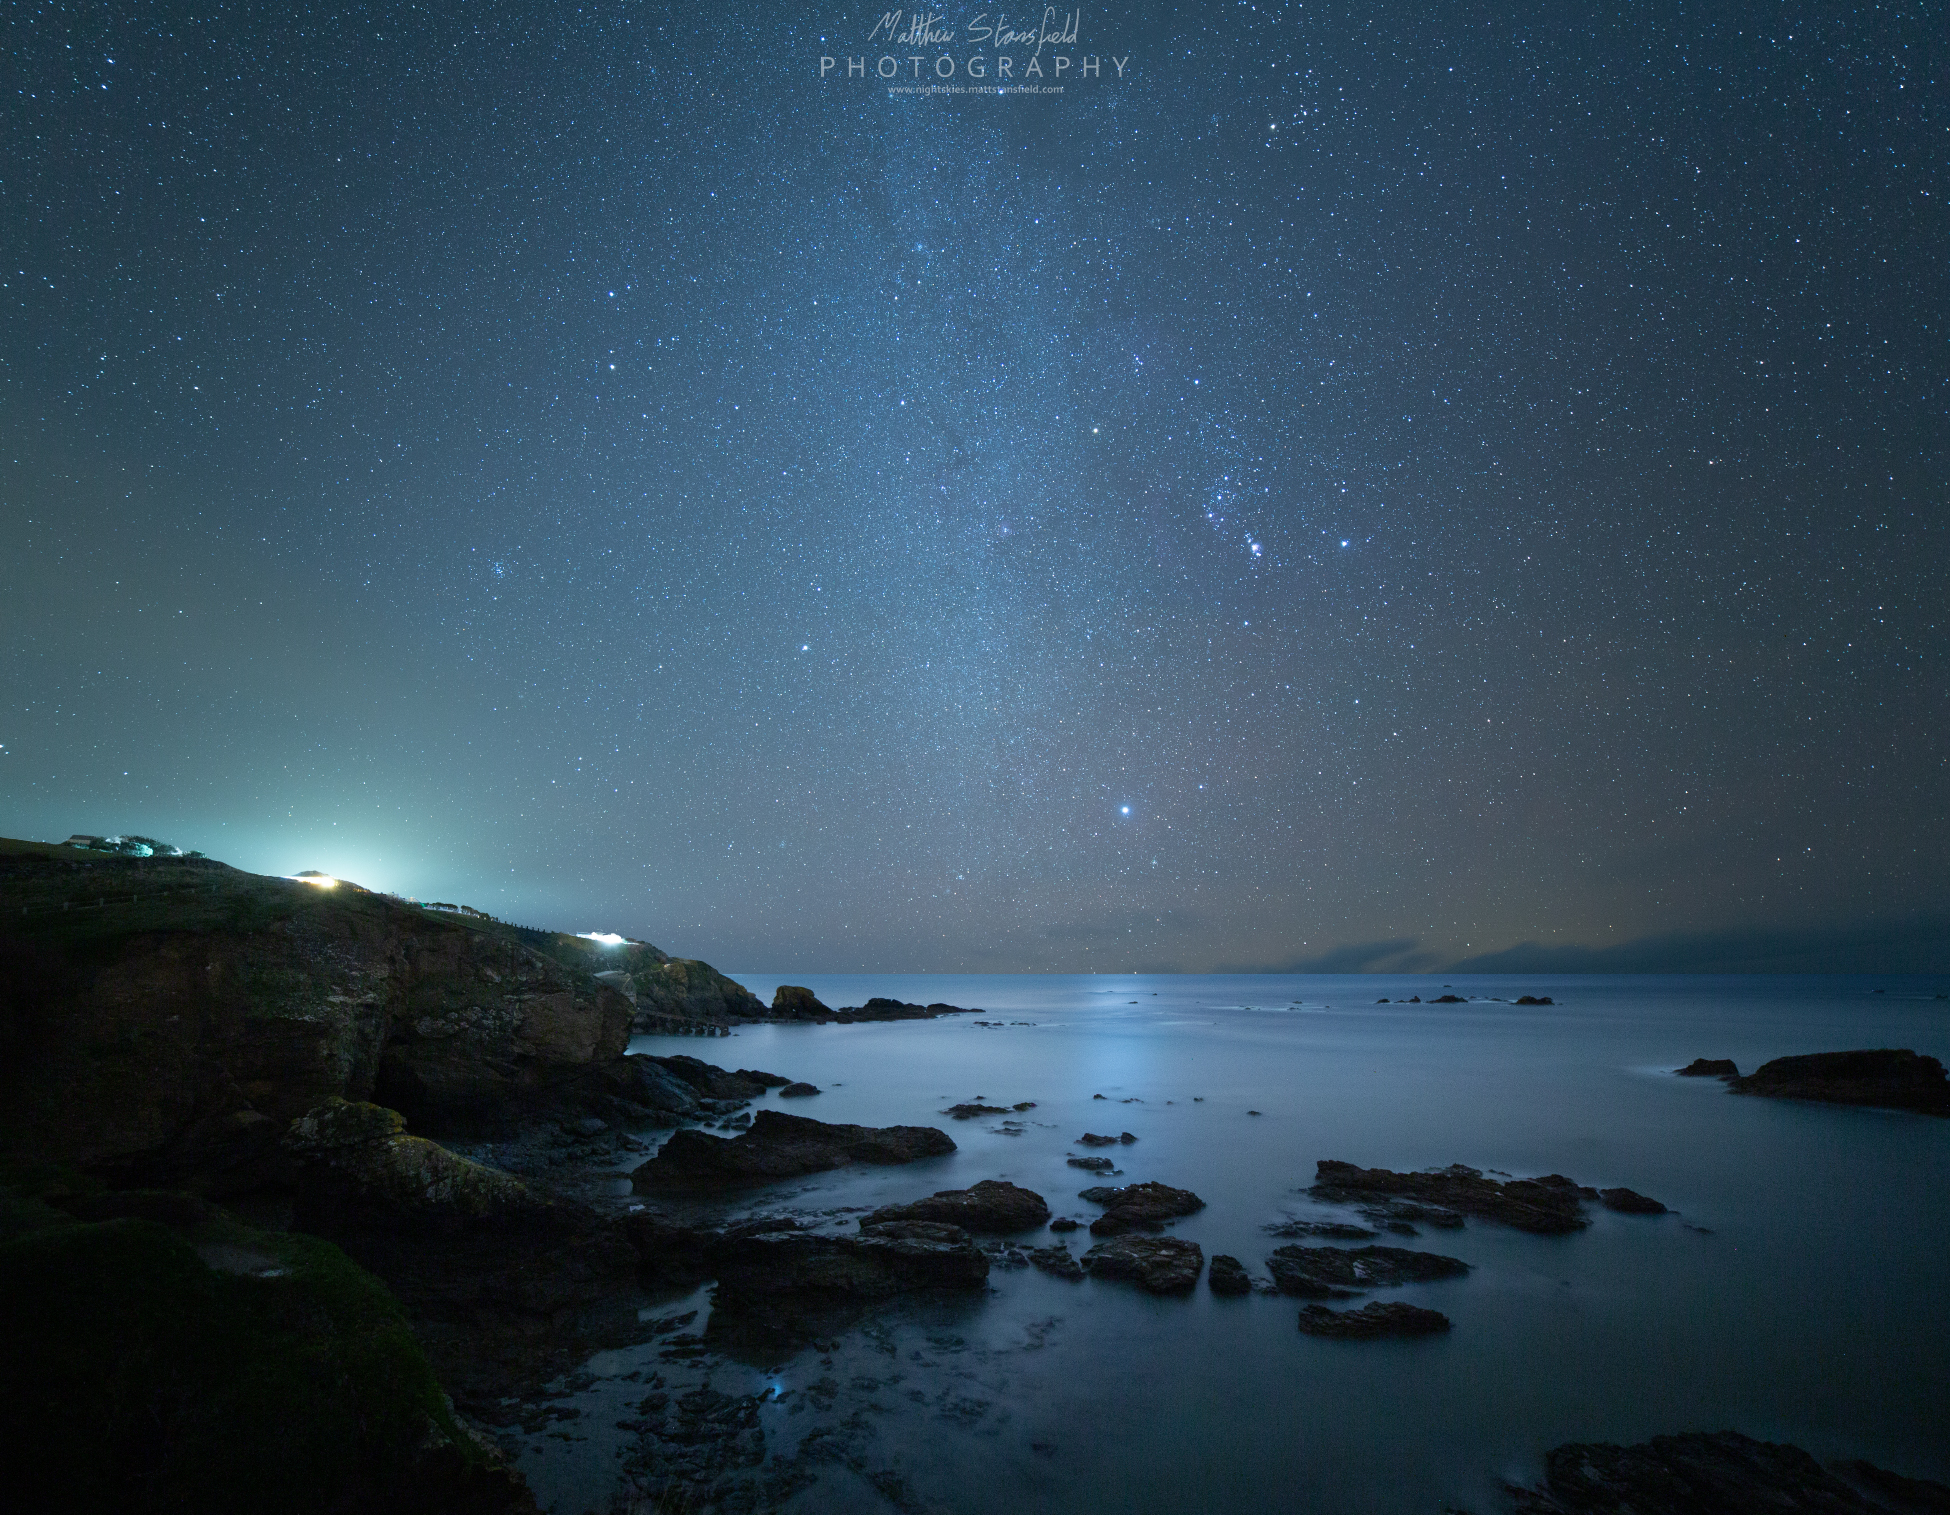 Lizard Point - ISO 800, F2.8, 240 seconds for the sky. ISO 1600, F2.8, 320 second exposure.